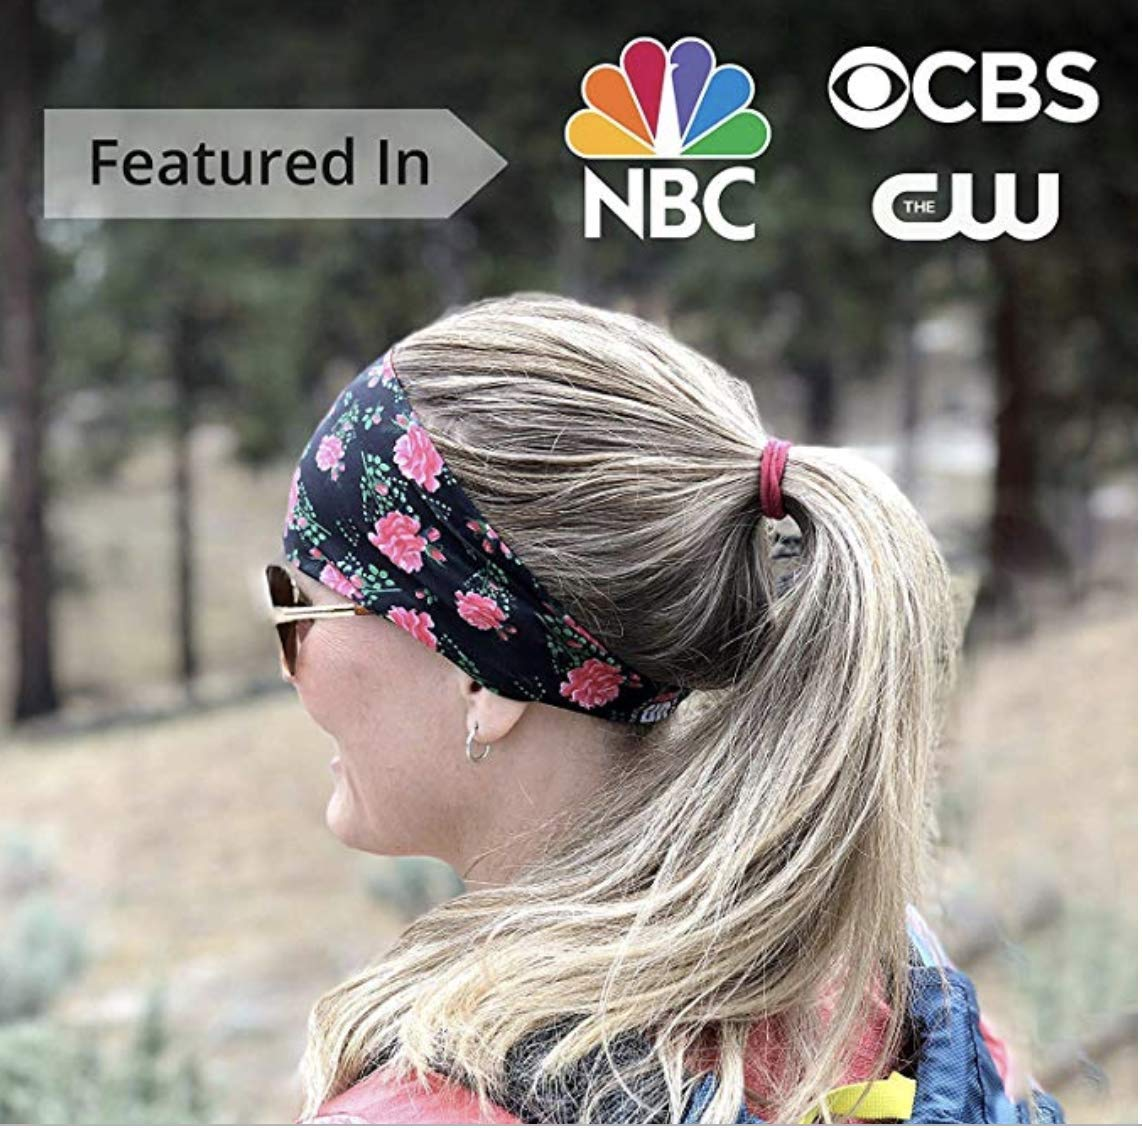 Cooling Headbands for Women | Moisture Wicking Womens Sweatband & Sports Headband | Stay Cool During Workouts Cycling Cardio Running Yoga | Headwear for Under Helmets & Hats (Sailer Jane) by Bani Bands (Image #4)